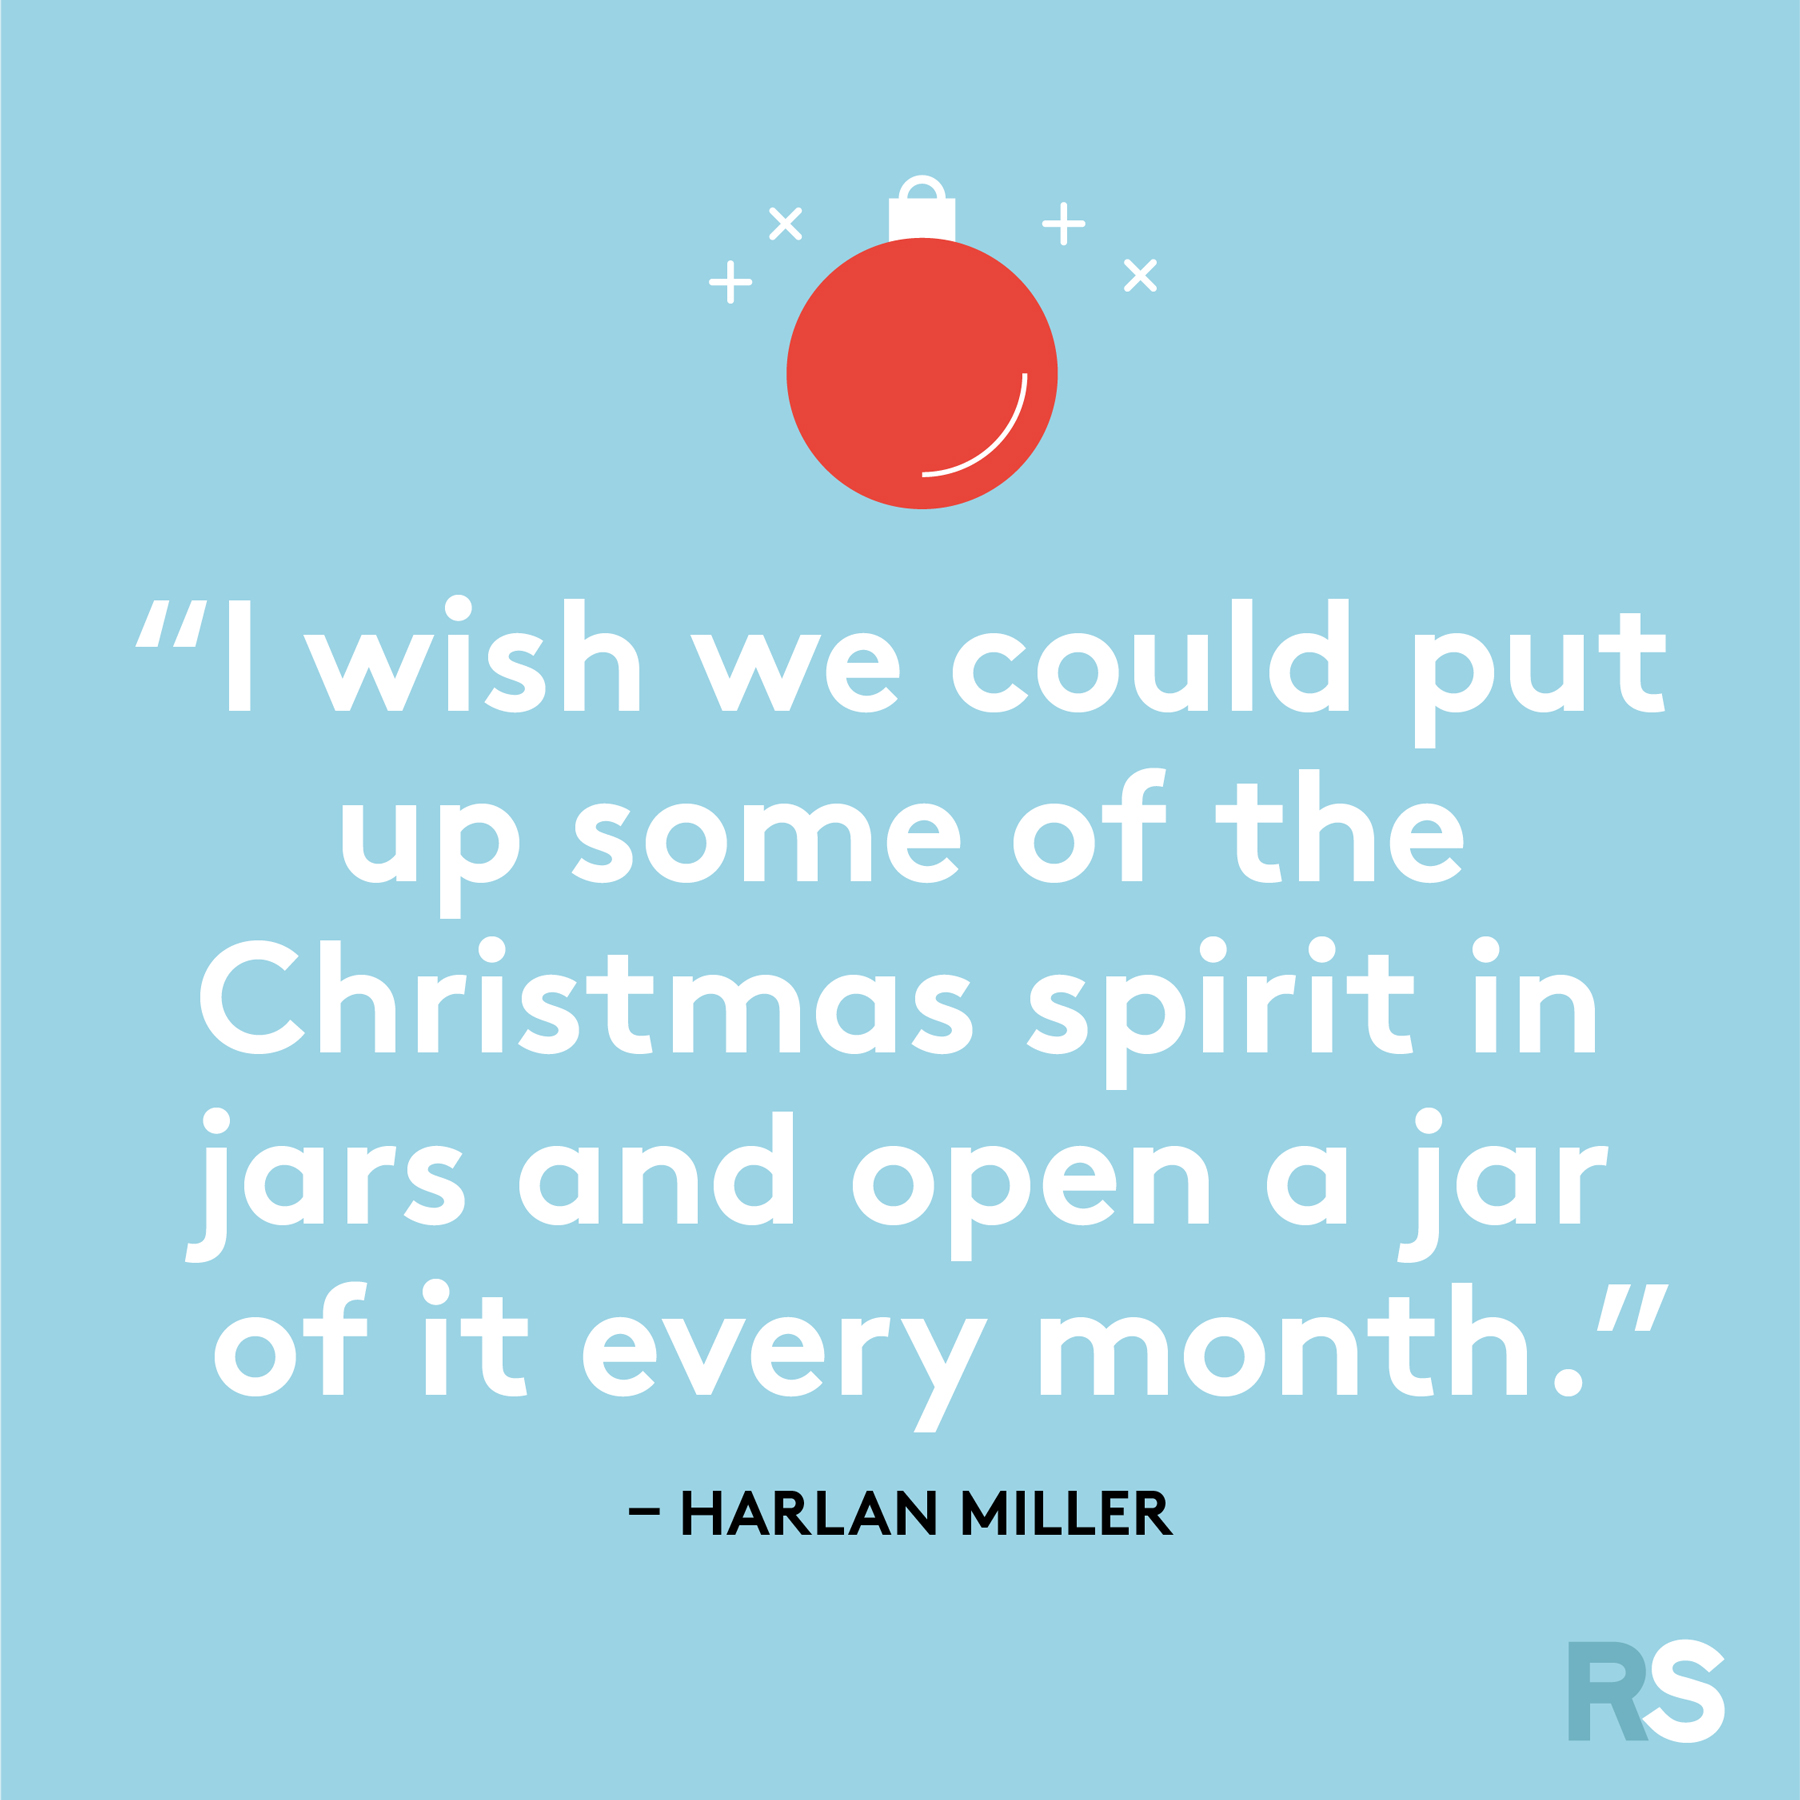 Best Christmas quotes - Harlan Miller